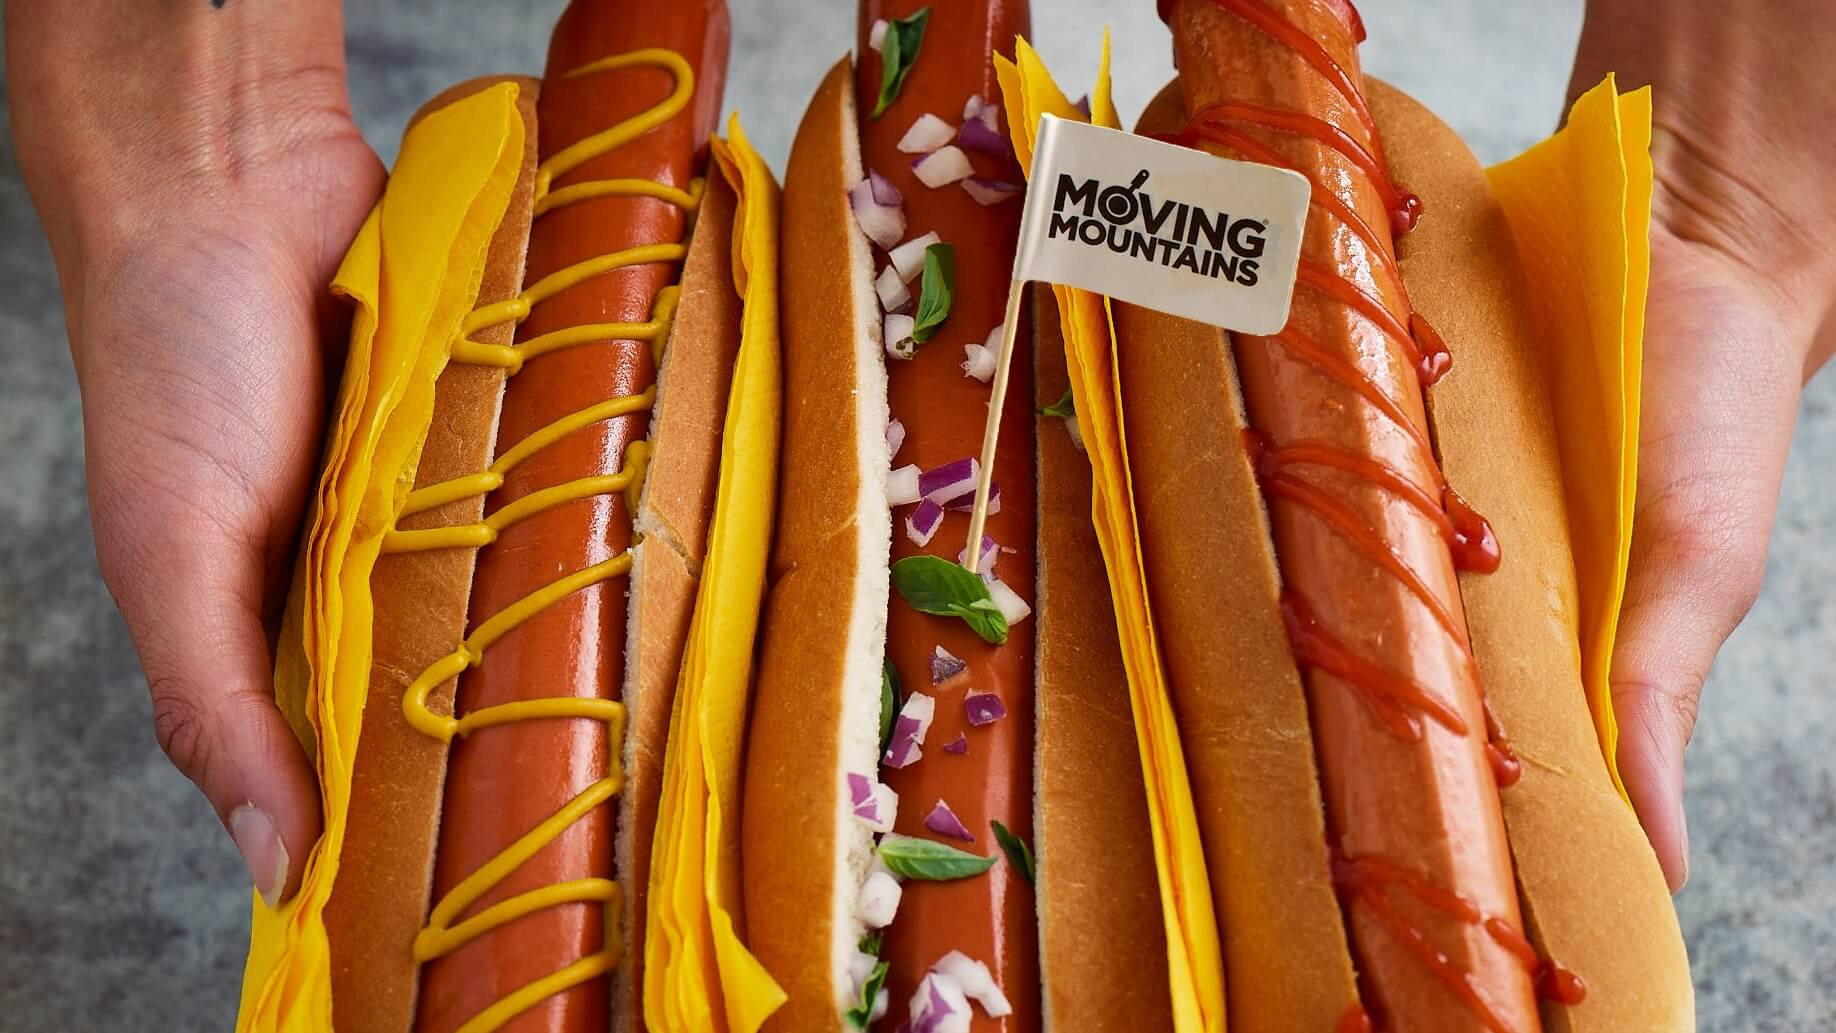 These New Vegan Hot Dogs Taste So Good They're Confusing Meat Eaters